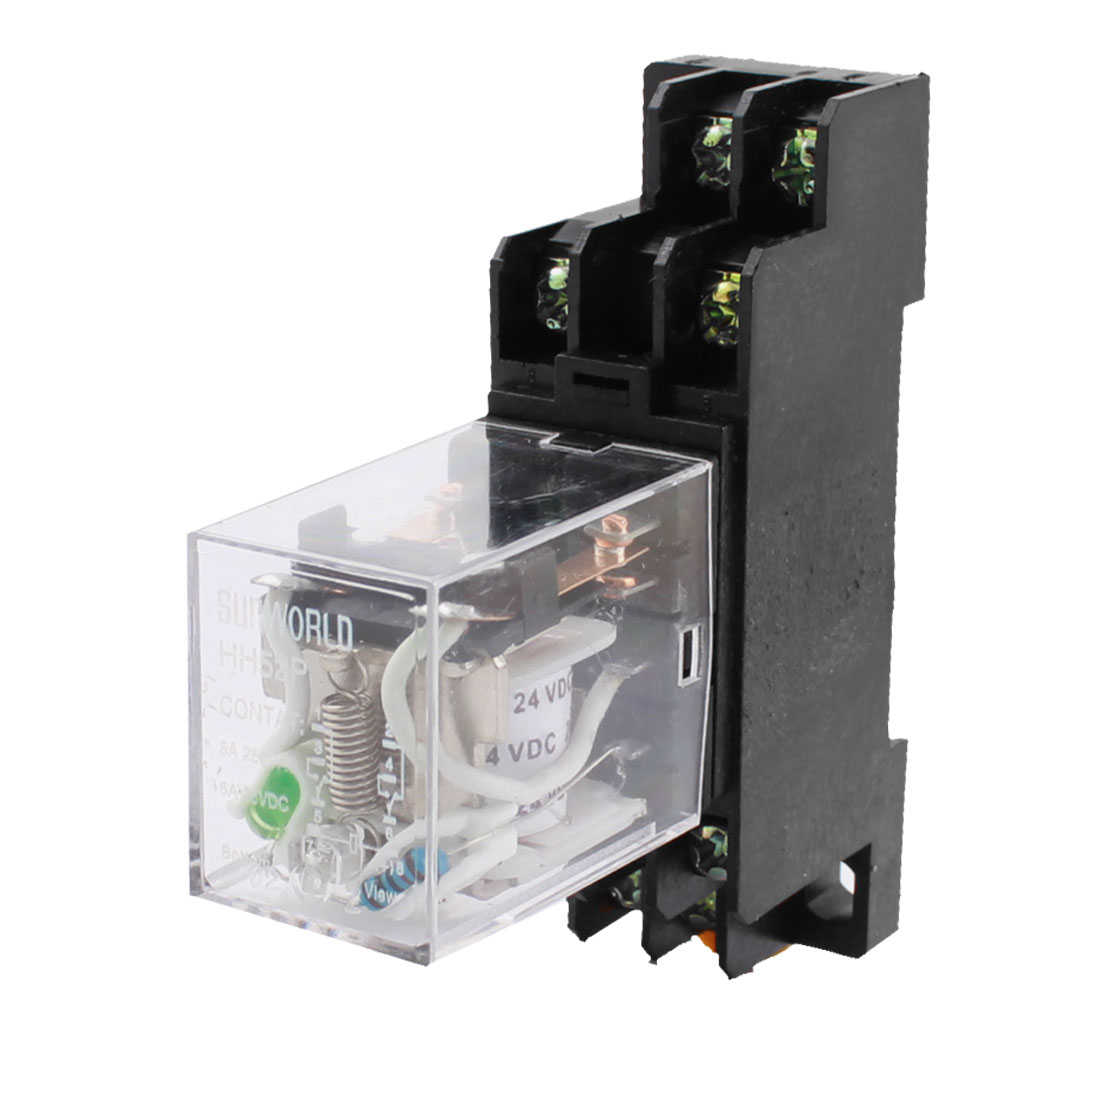 HH52P DC 24V Coil Voltage 8 Terminals DPDT Green LED Pilot Lamp 35mm DIN Rail Mount Power Electromagnetic Relay w Socket